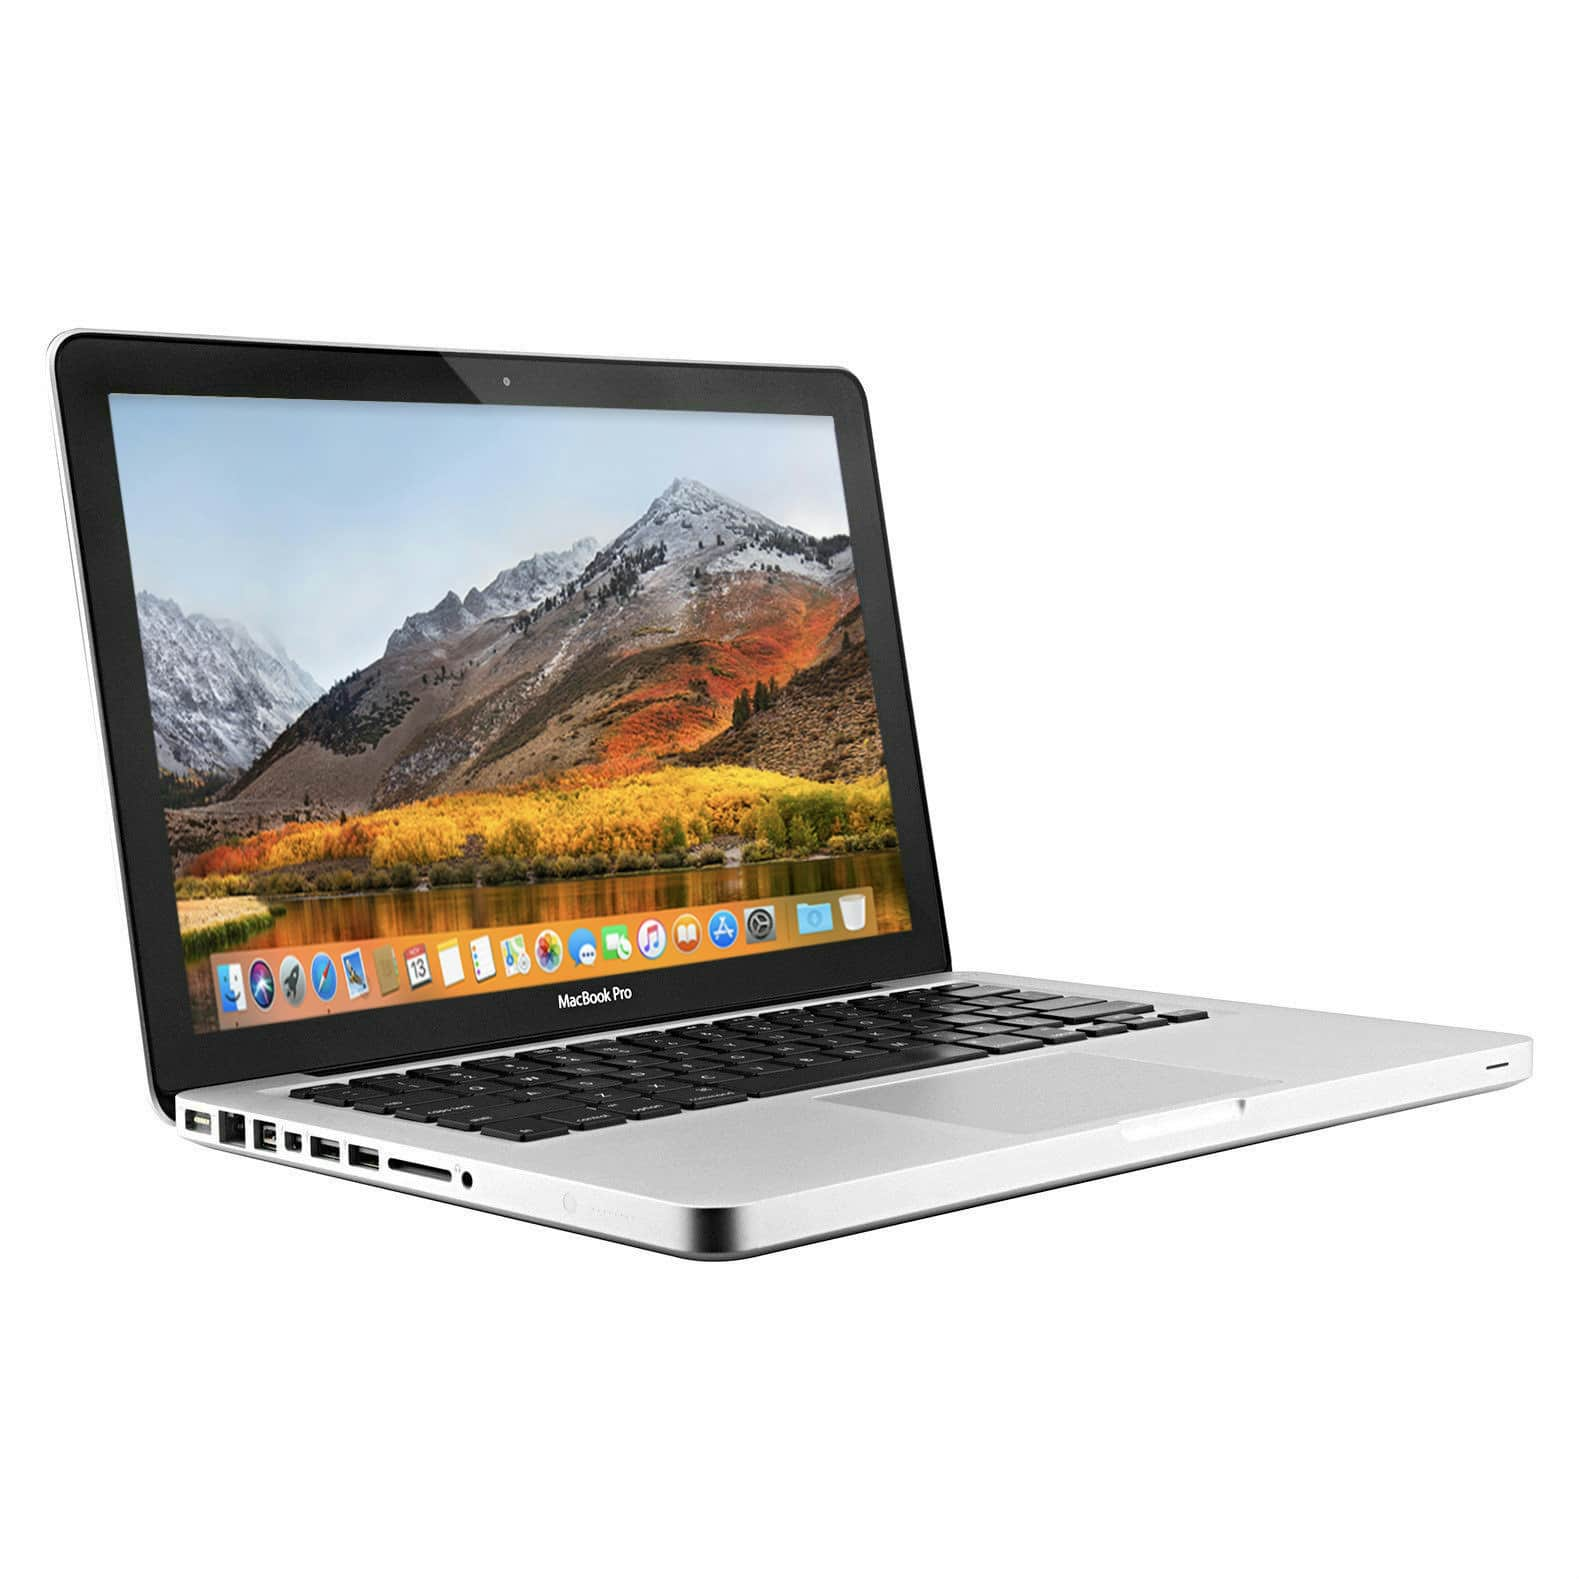 "eBay Apple MacBook Pro 13.3"" Turbo Boost Intel i7 2.90 GHz CPU 8GB, 750 GB, MD102LL/A  $300"